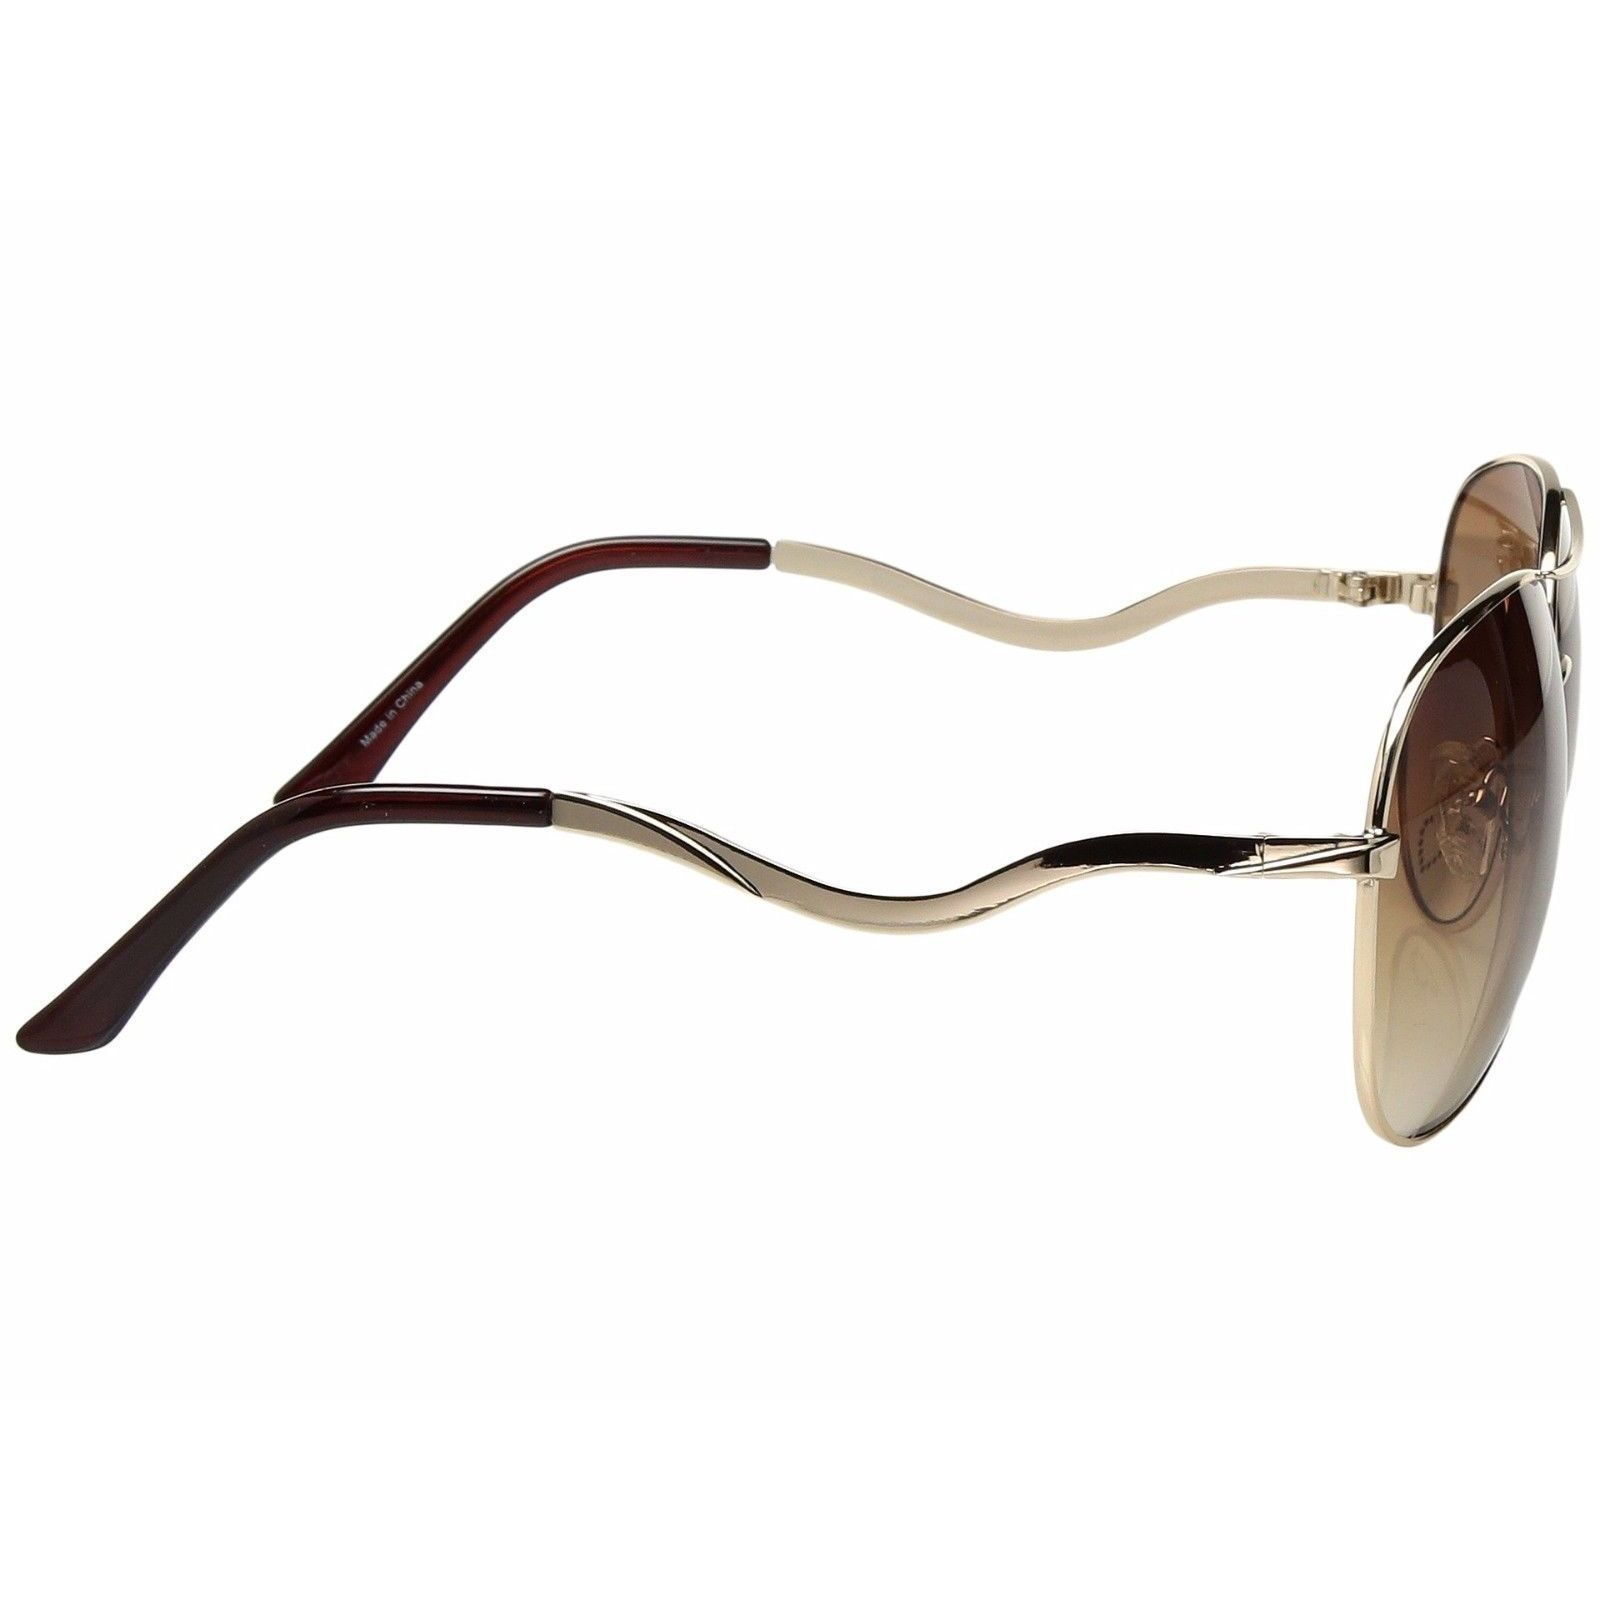 e73ef1337a2cb Shop Guess Aviator 7021 Womens Brown Frame Gold Lens Sunglasses - Free  Shipping Today - Overstock - 18744840